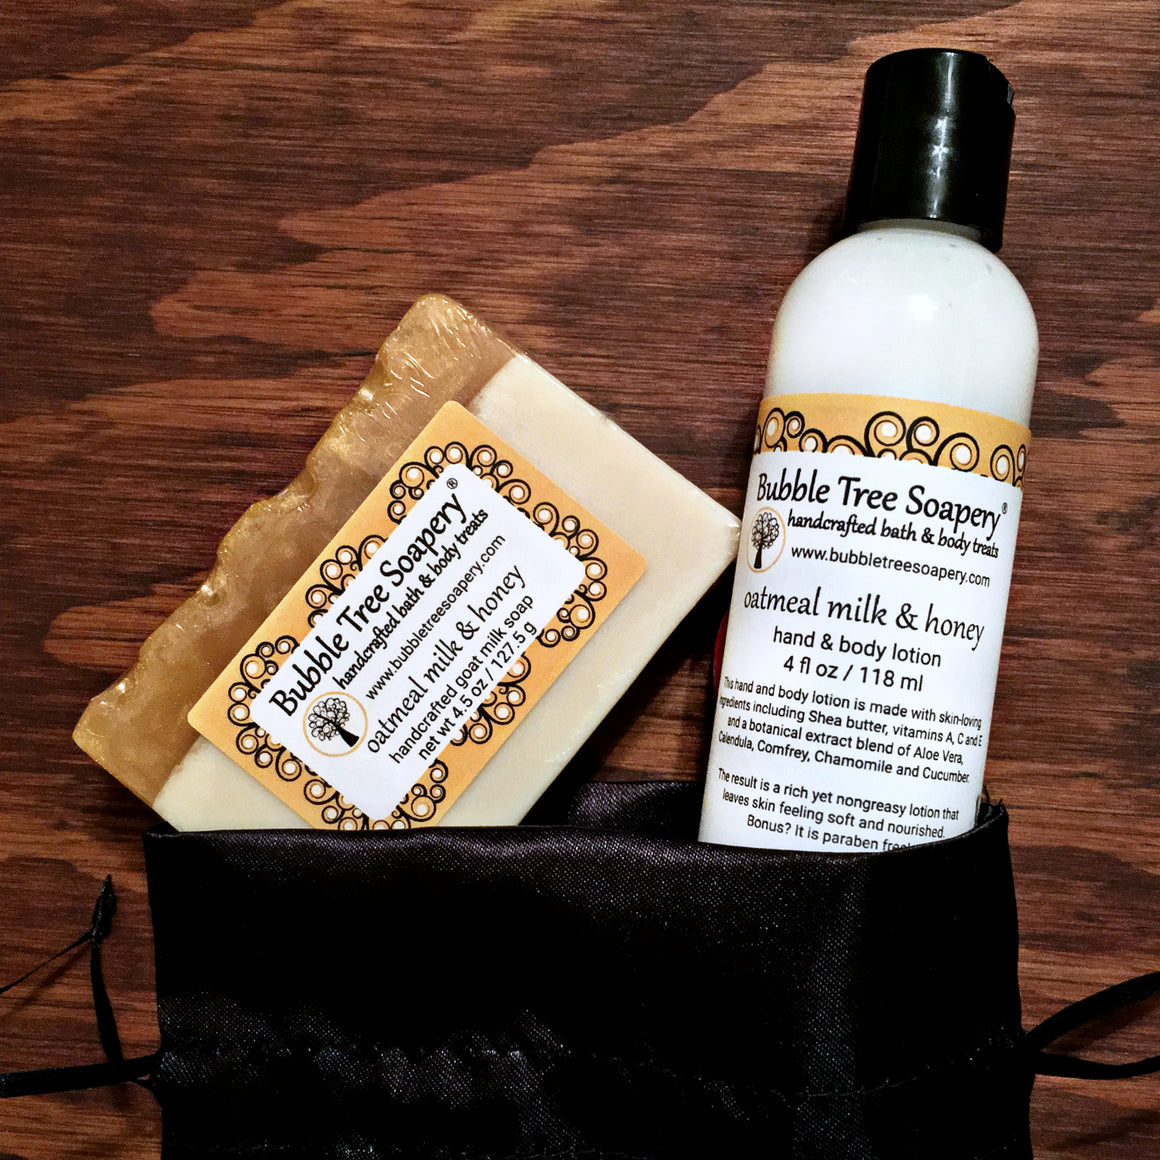 Oatmeal Milk & Honey Bath Gift Set | Bubble Tree Soapery